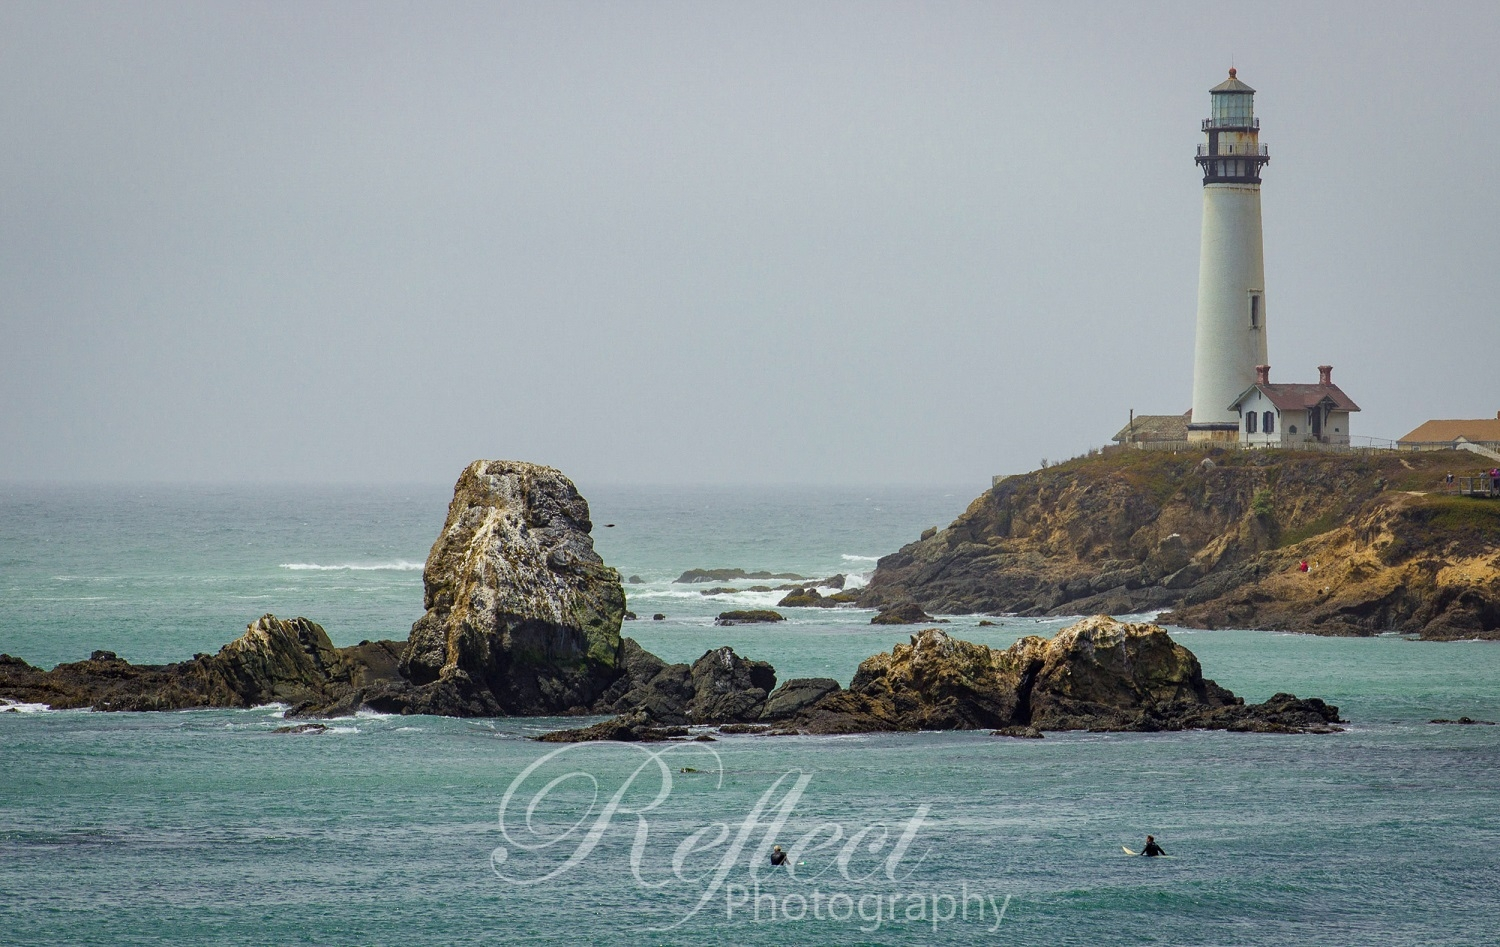 Surfs up at Pigeon Point